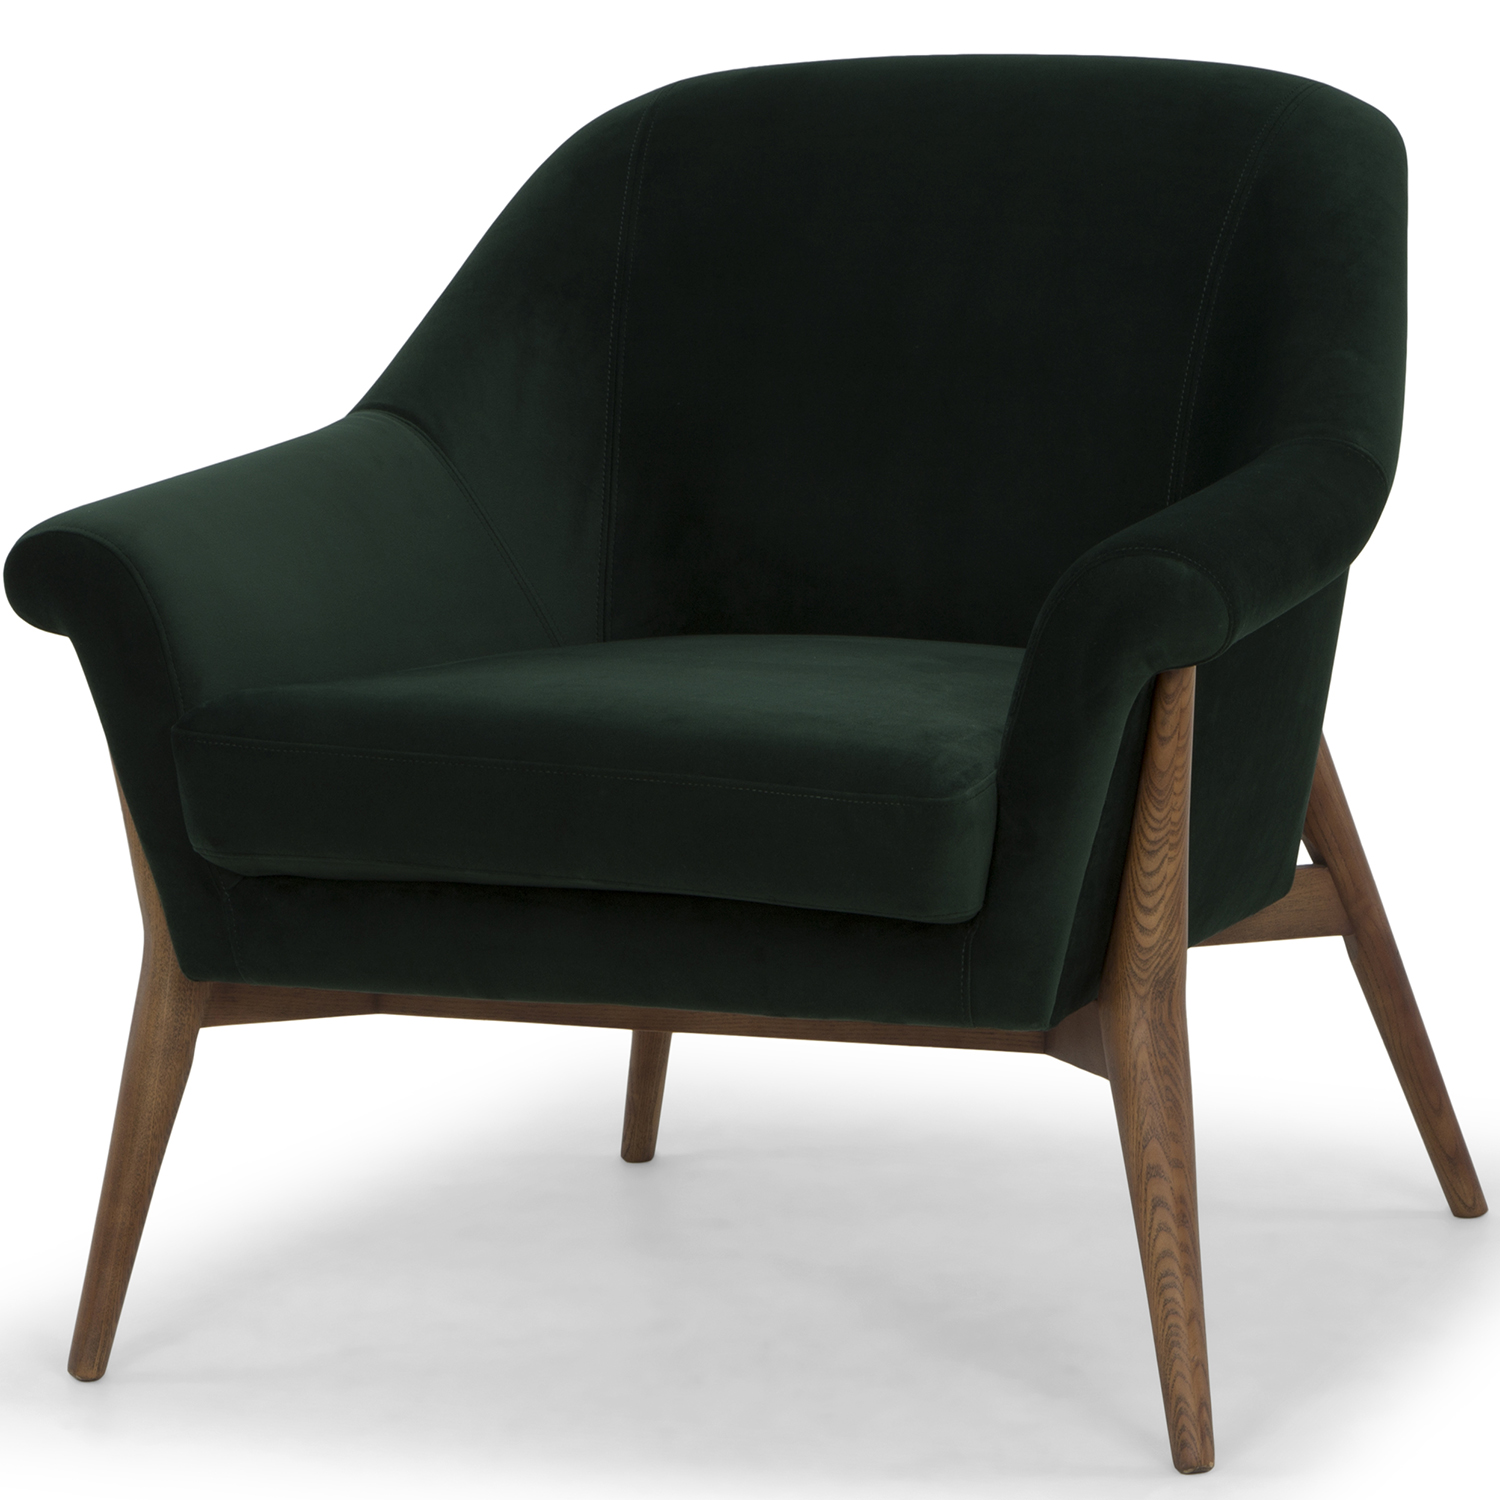 Peachy Charlize Accent Chair In Emerald Green Fabric On Wood Legs By Nuevo Modern Furniture Ibusinesslaw Wood Chair Design Ideas Ibusinesslaworg